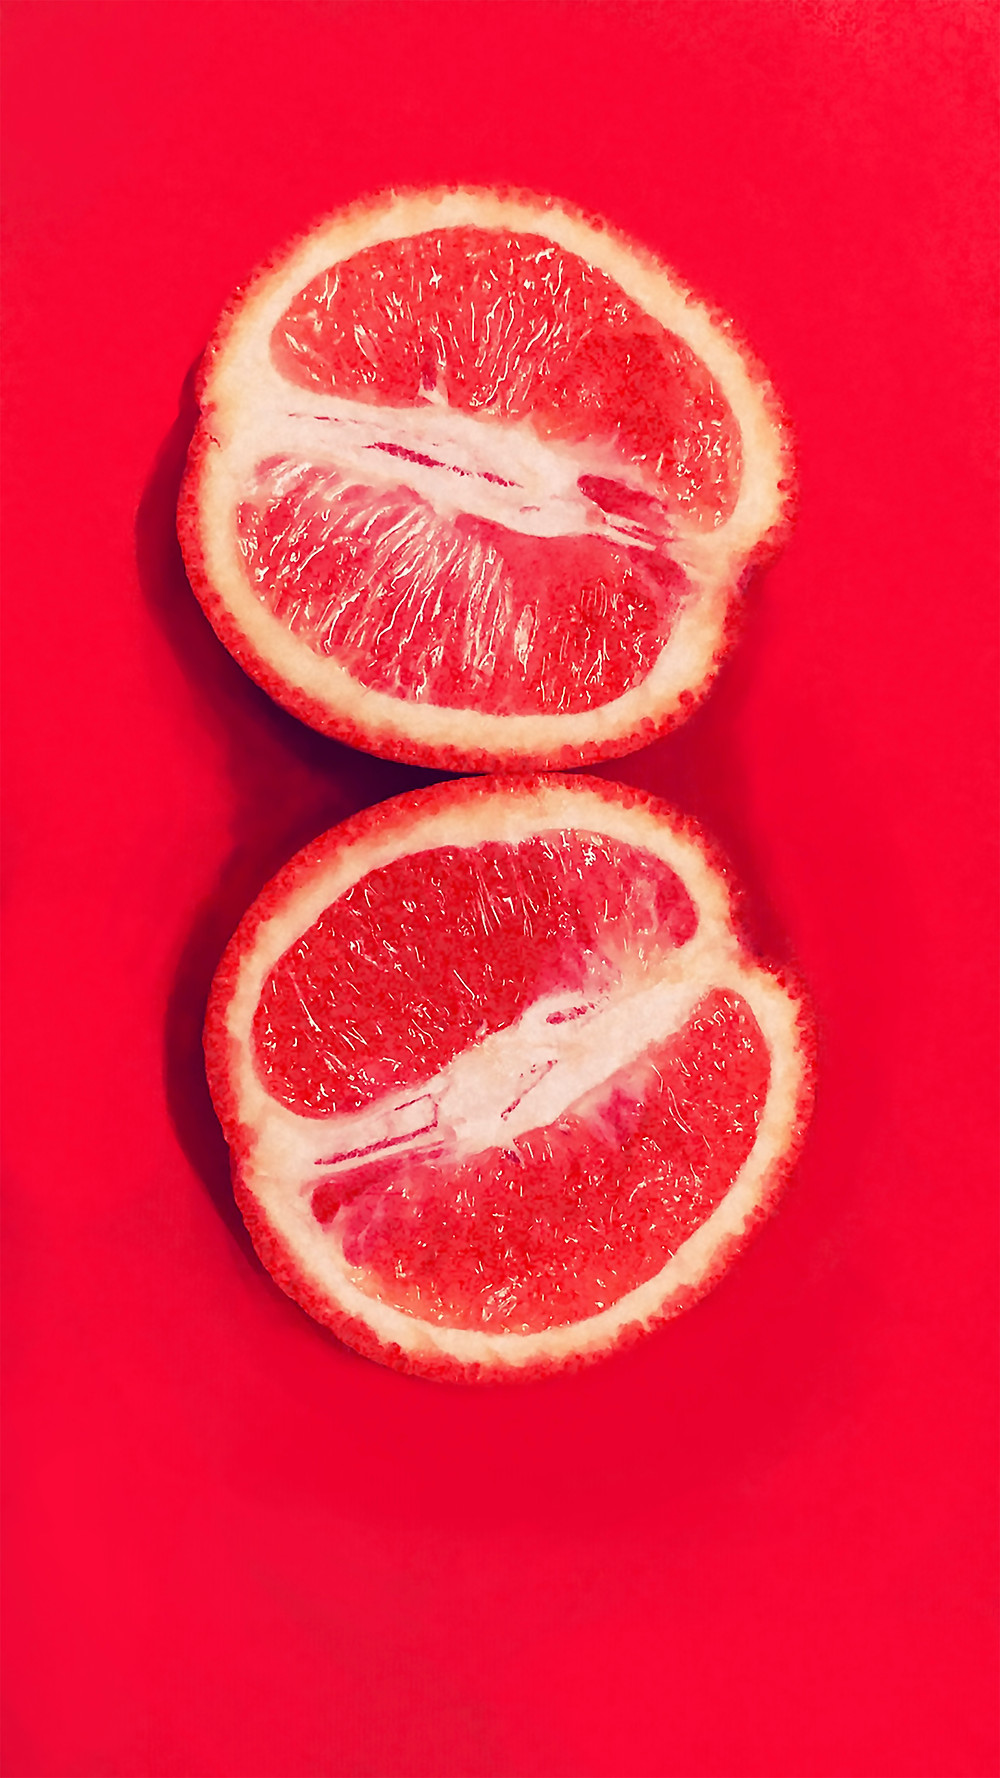 Two halves of a pint grapefruit on a red background.